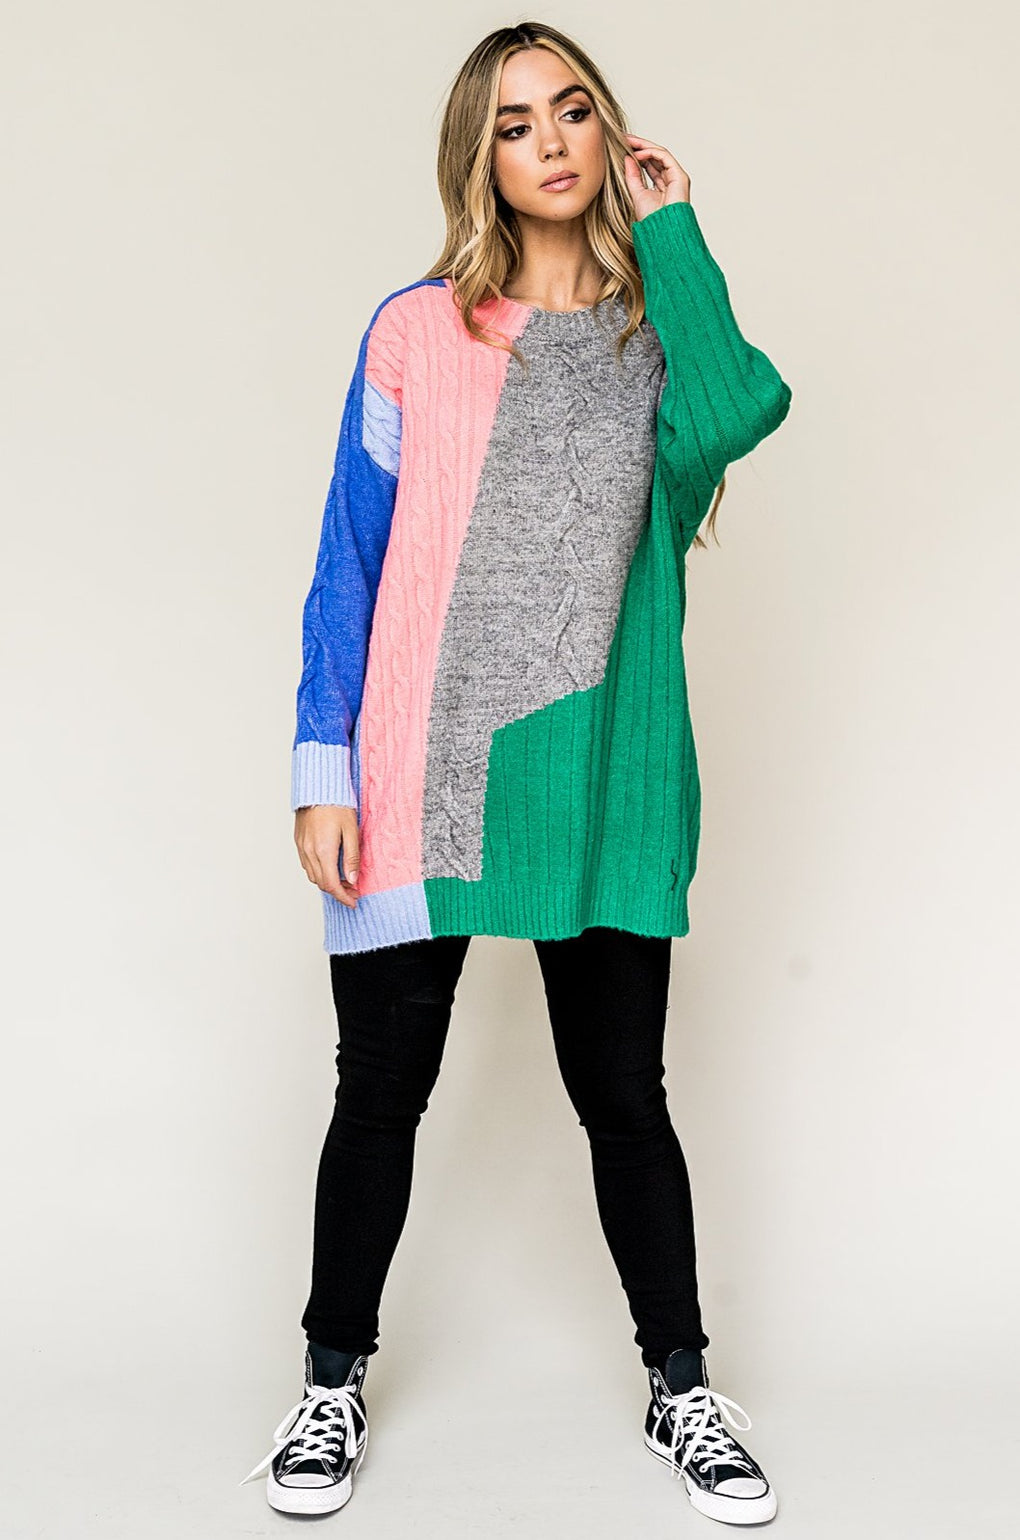 My Muse Oversized Colorblock Knit